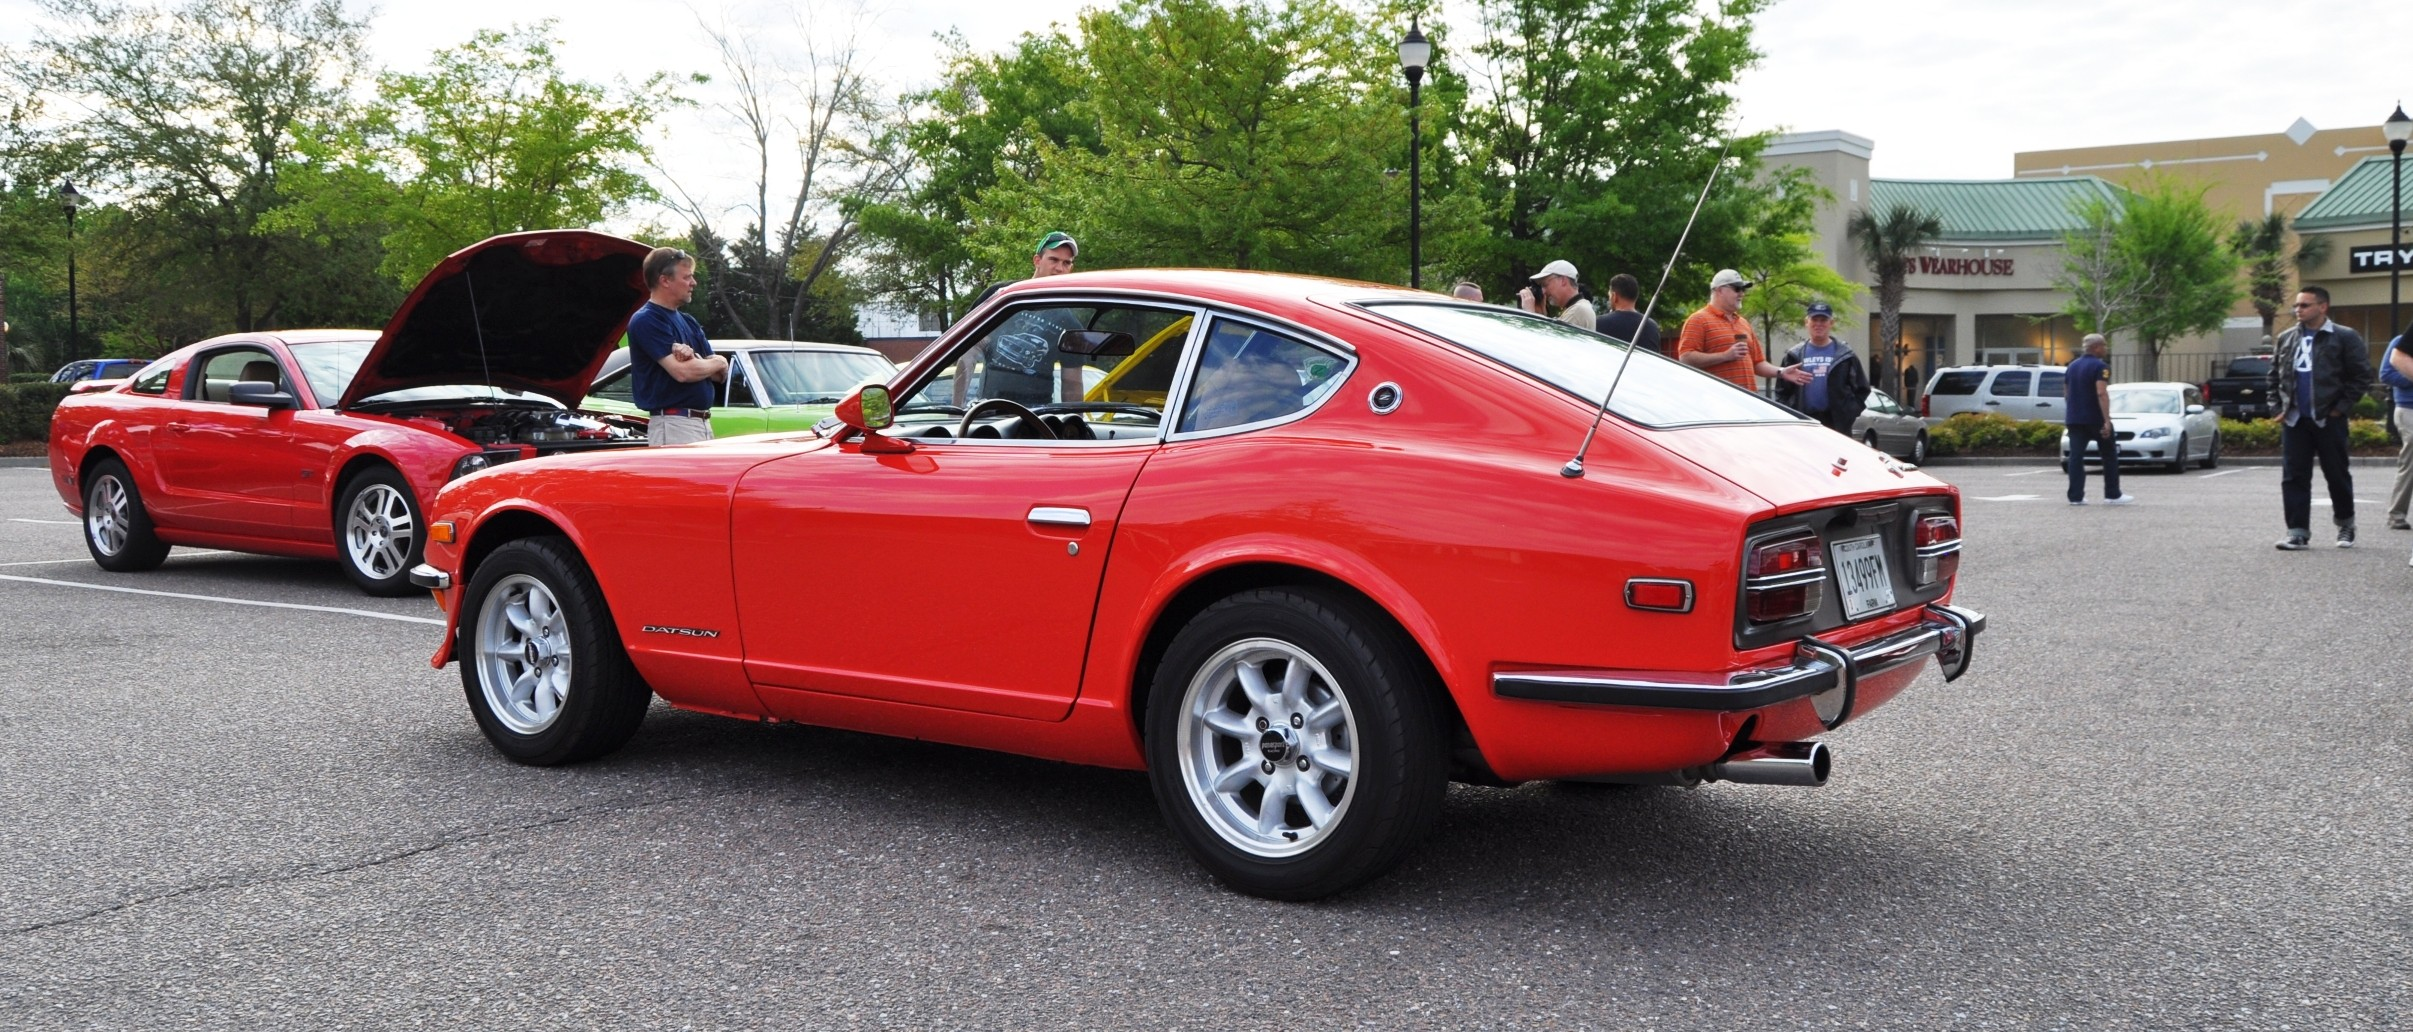 Classic Sports Cars -- Datsun 240z At Cars  U0026 Coffee